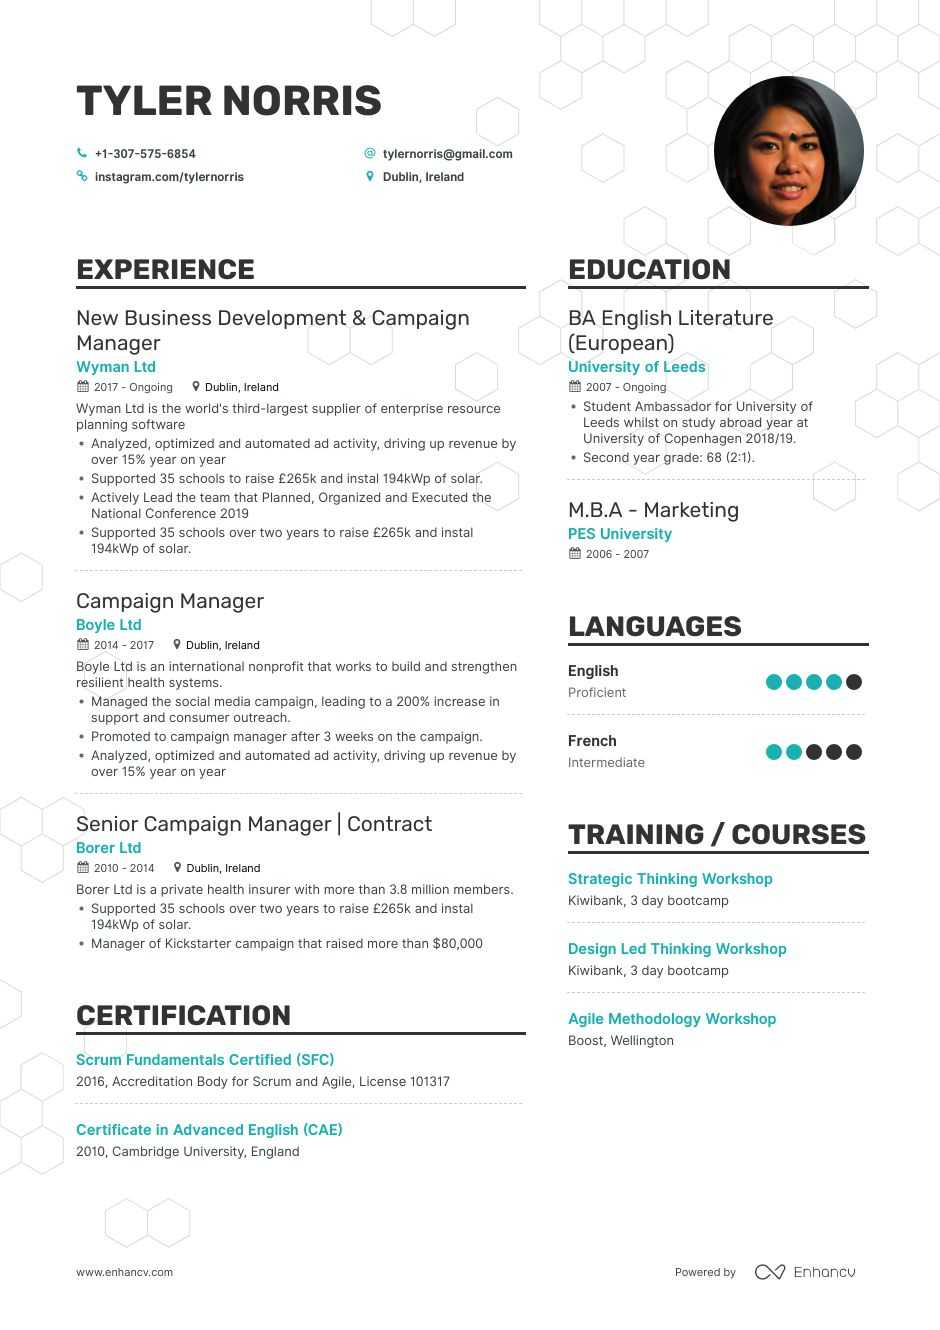 campaign manager resume example for enhancv entry level film format fresher 12th pass Resume Campaign Manager Resume